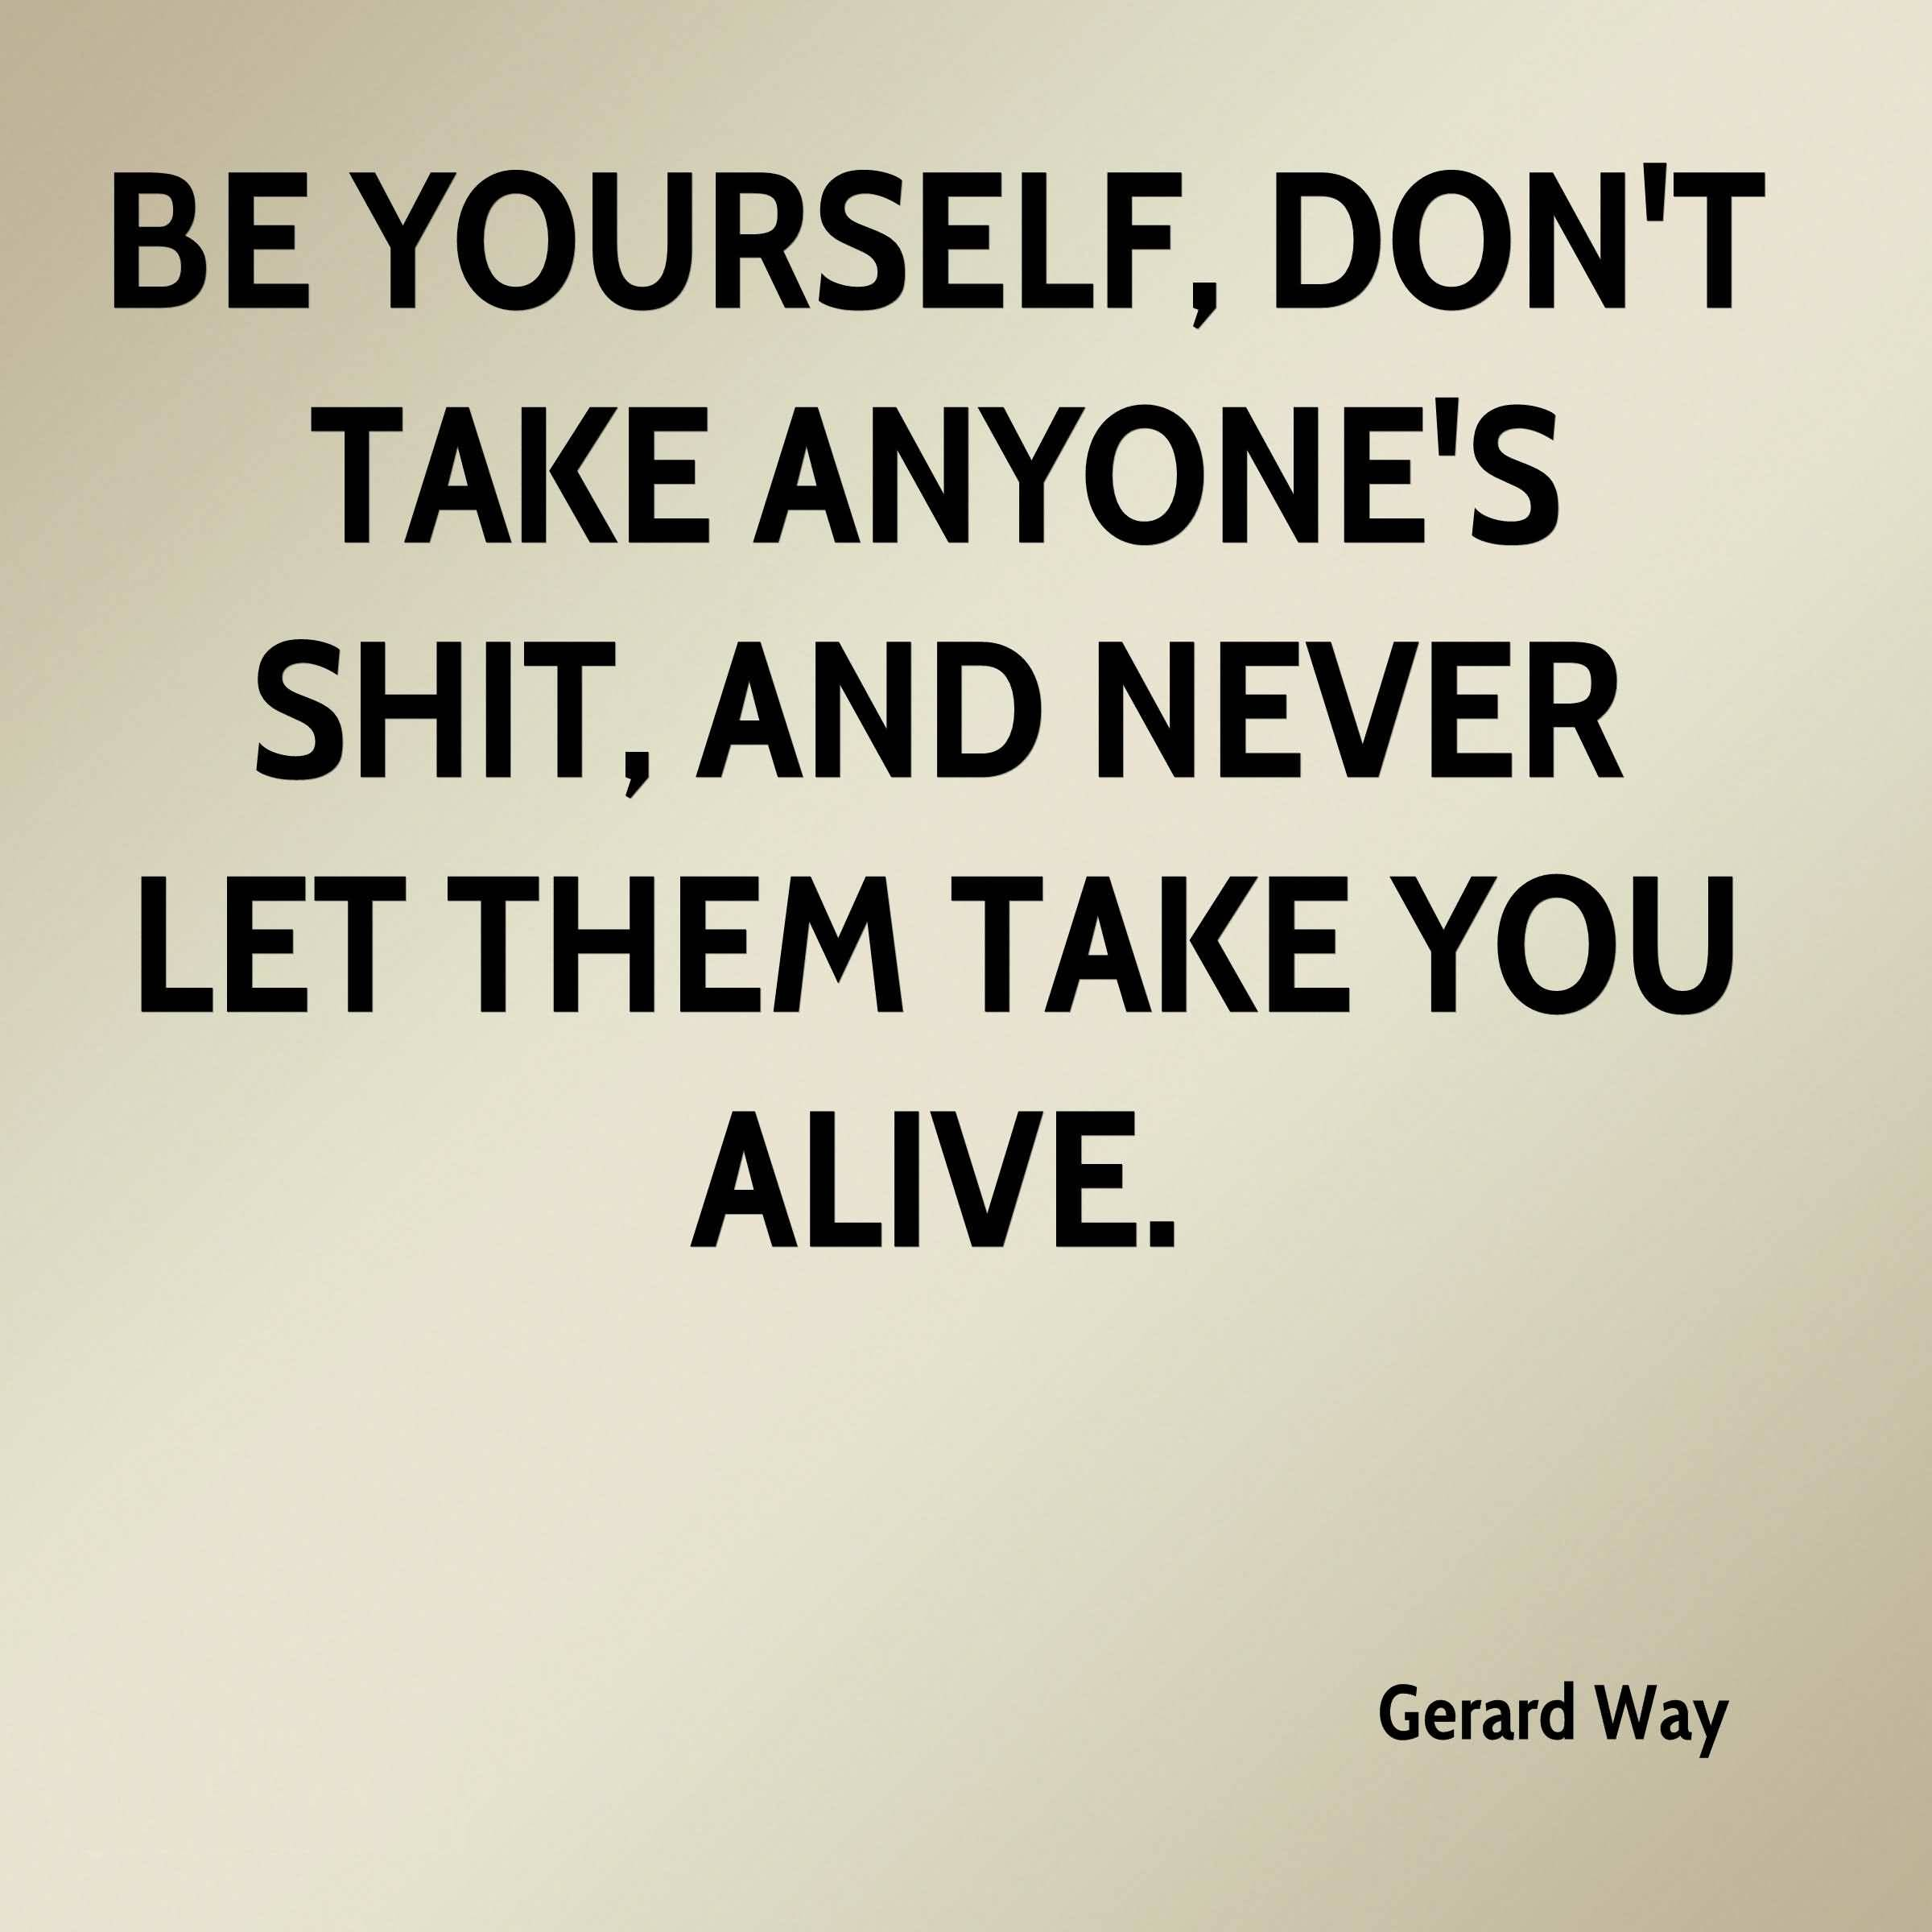 Be yourself dont take anyones shit and never let then take you alive - Gerard Way